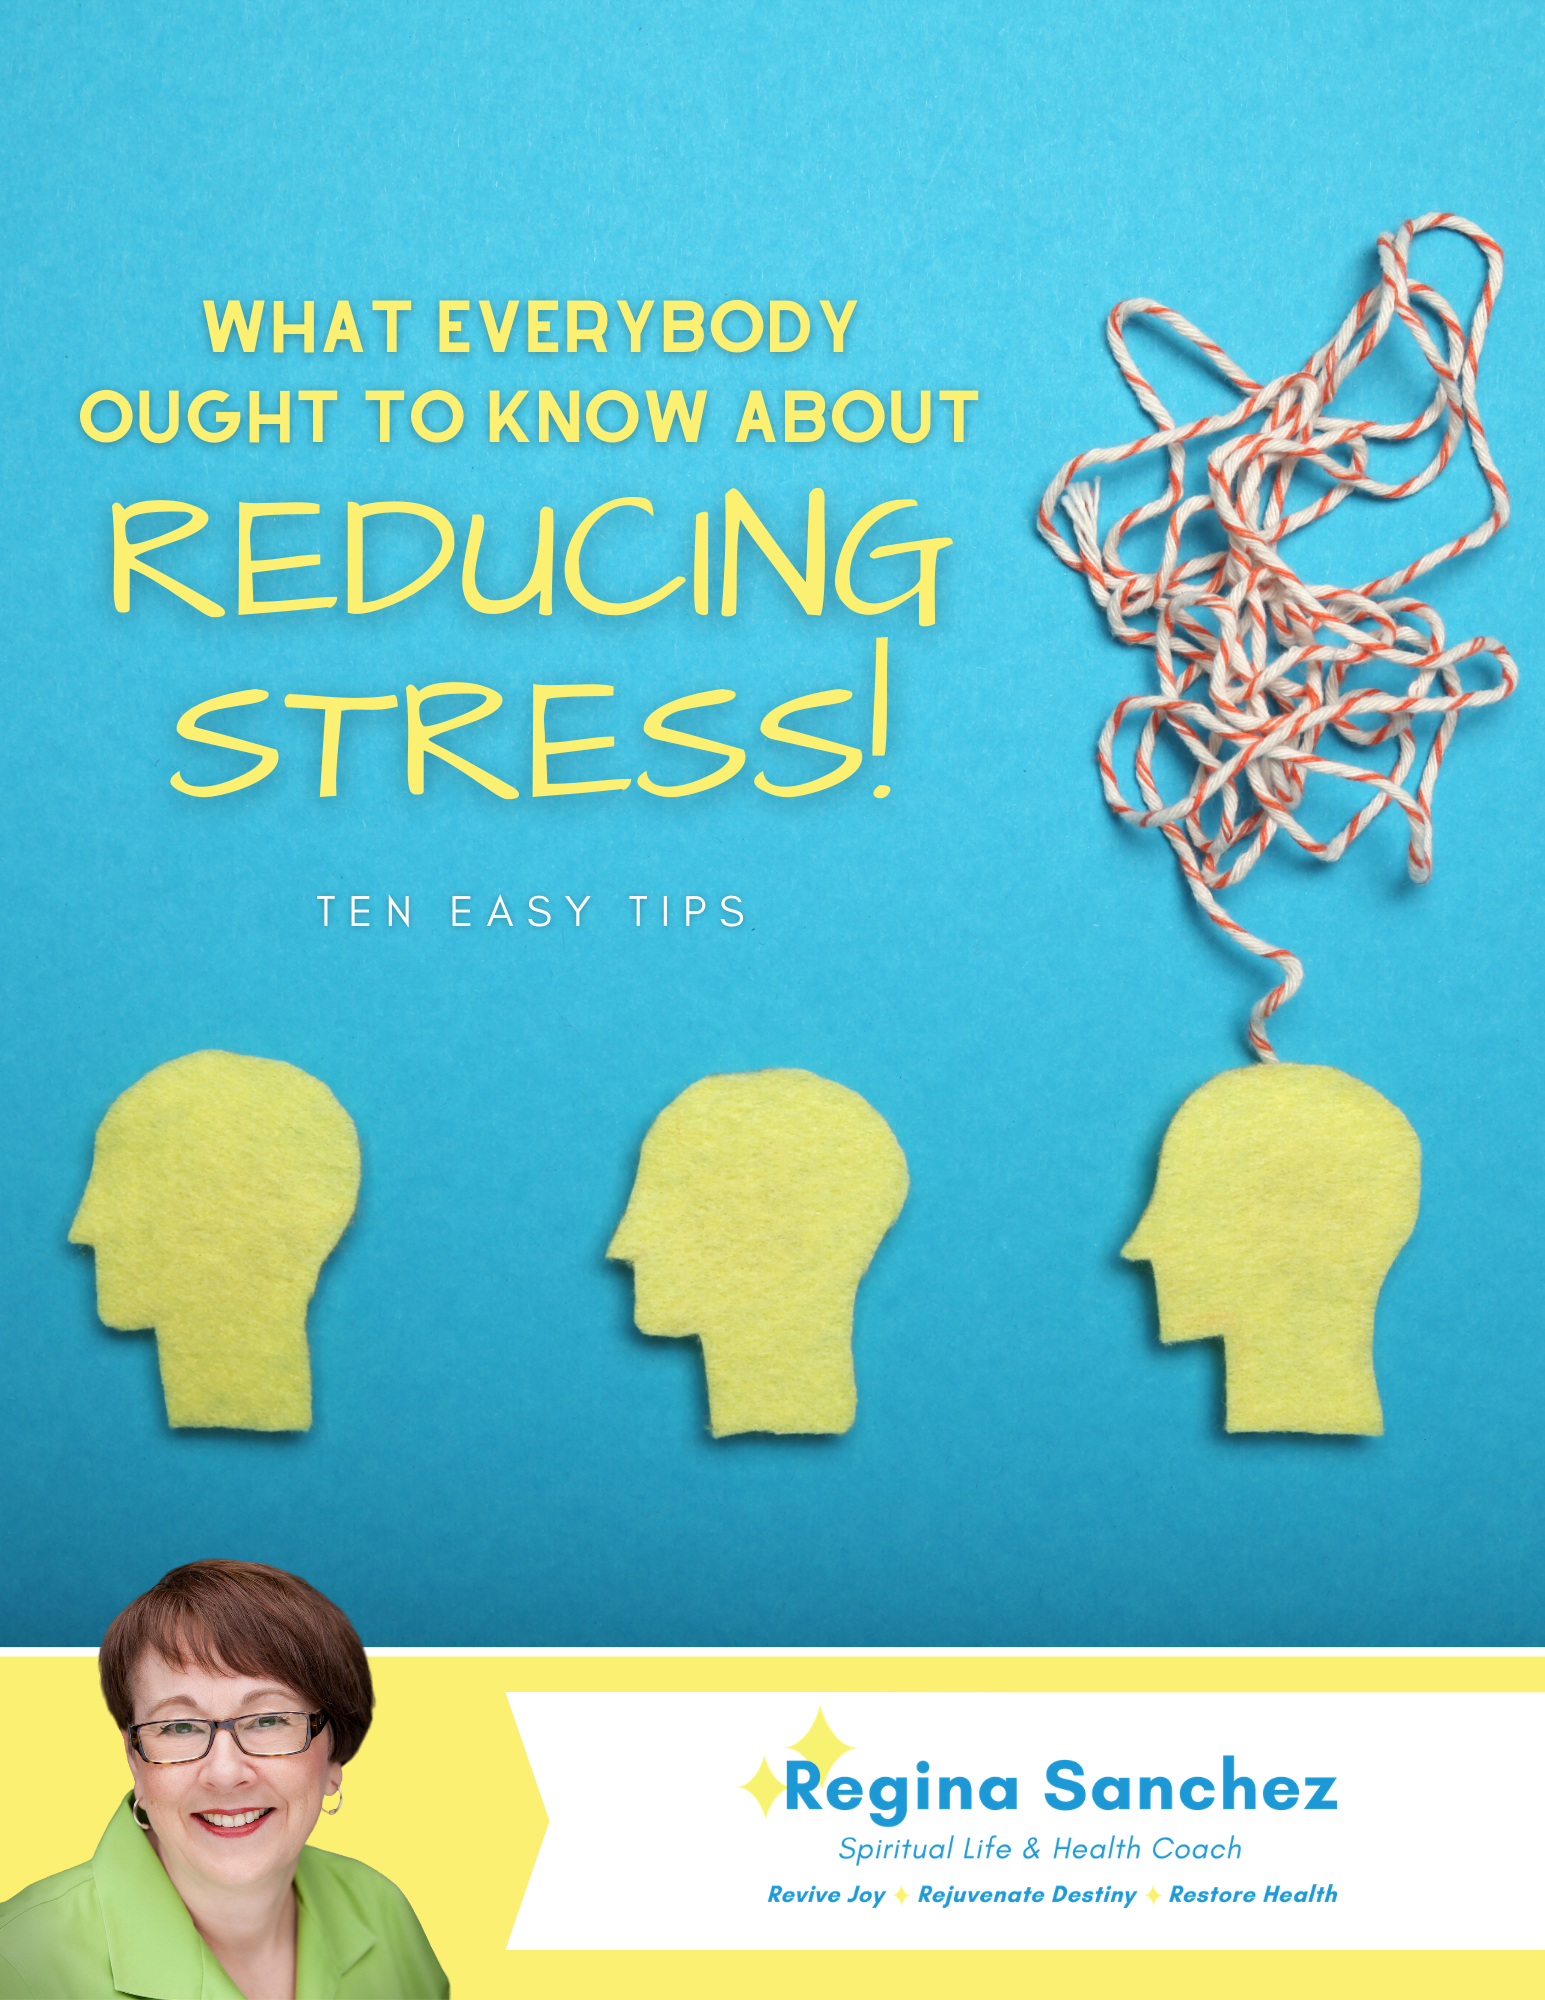 What Everyone Ought to Know About Reducing Stress...Ten Easy Tips FREE!